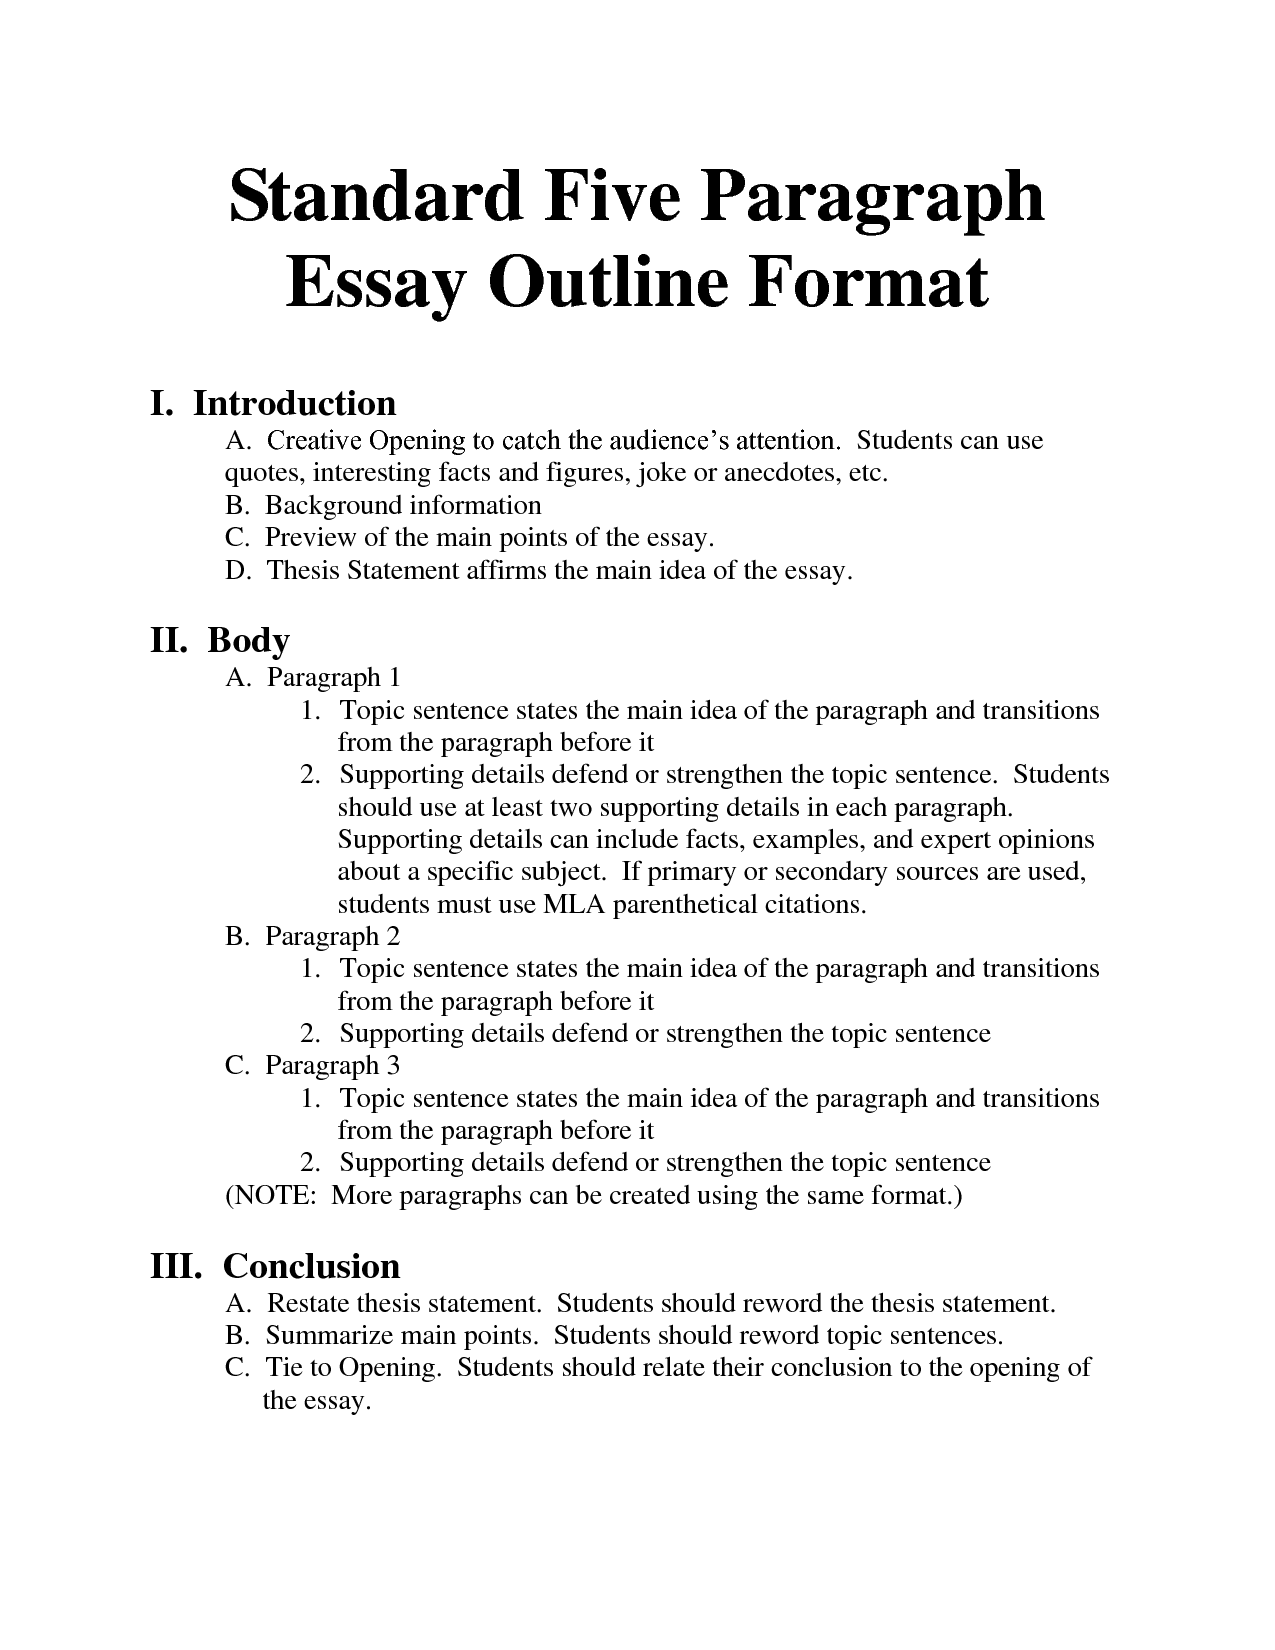 Jumpstart your essay